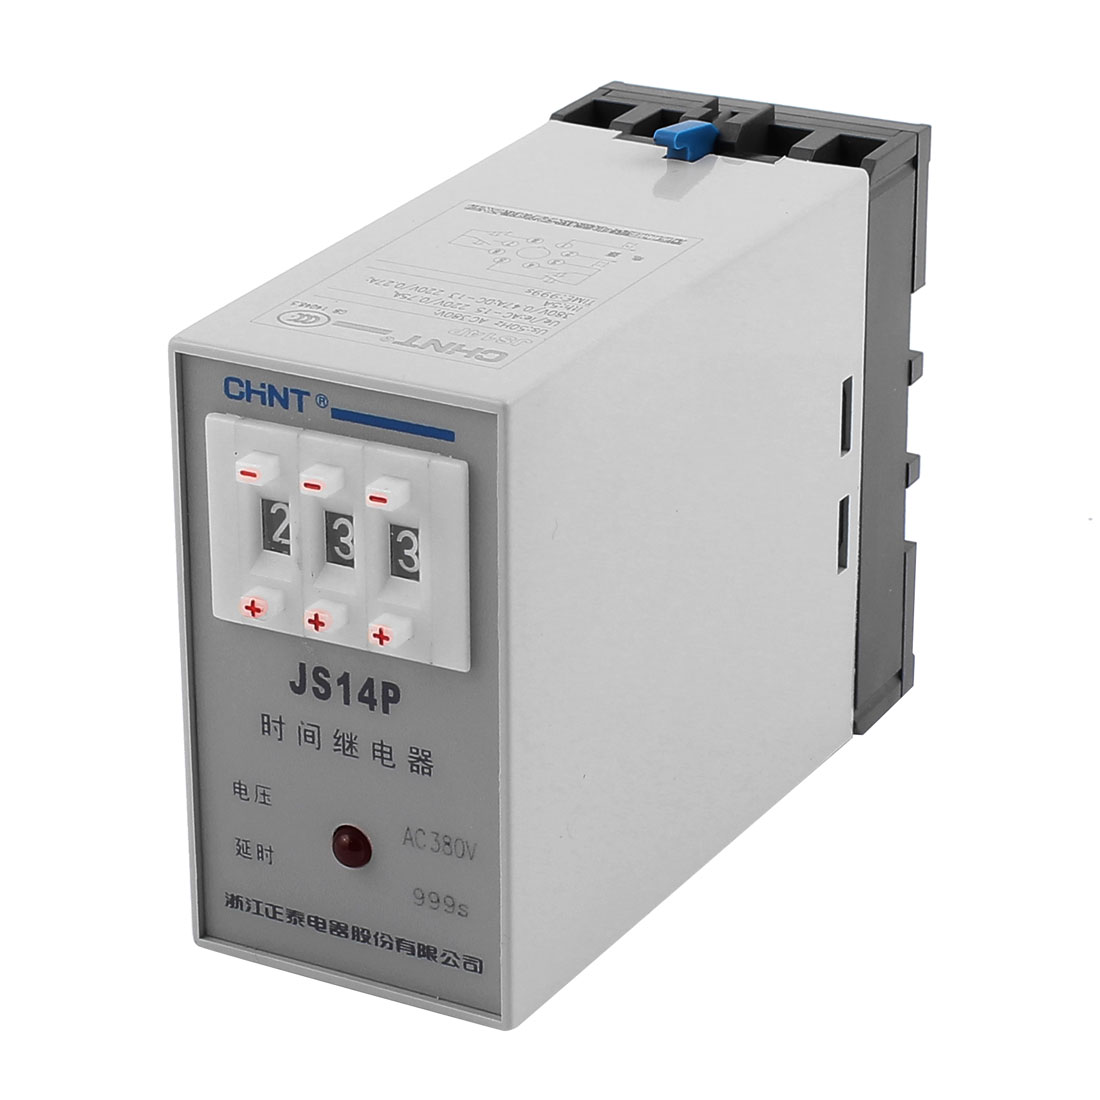 JS14P AC 380V 1-999 Seconds Three Adjustment Power On Delay Timer Digital Display Time Relay